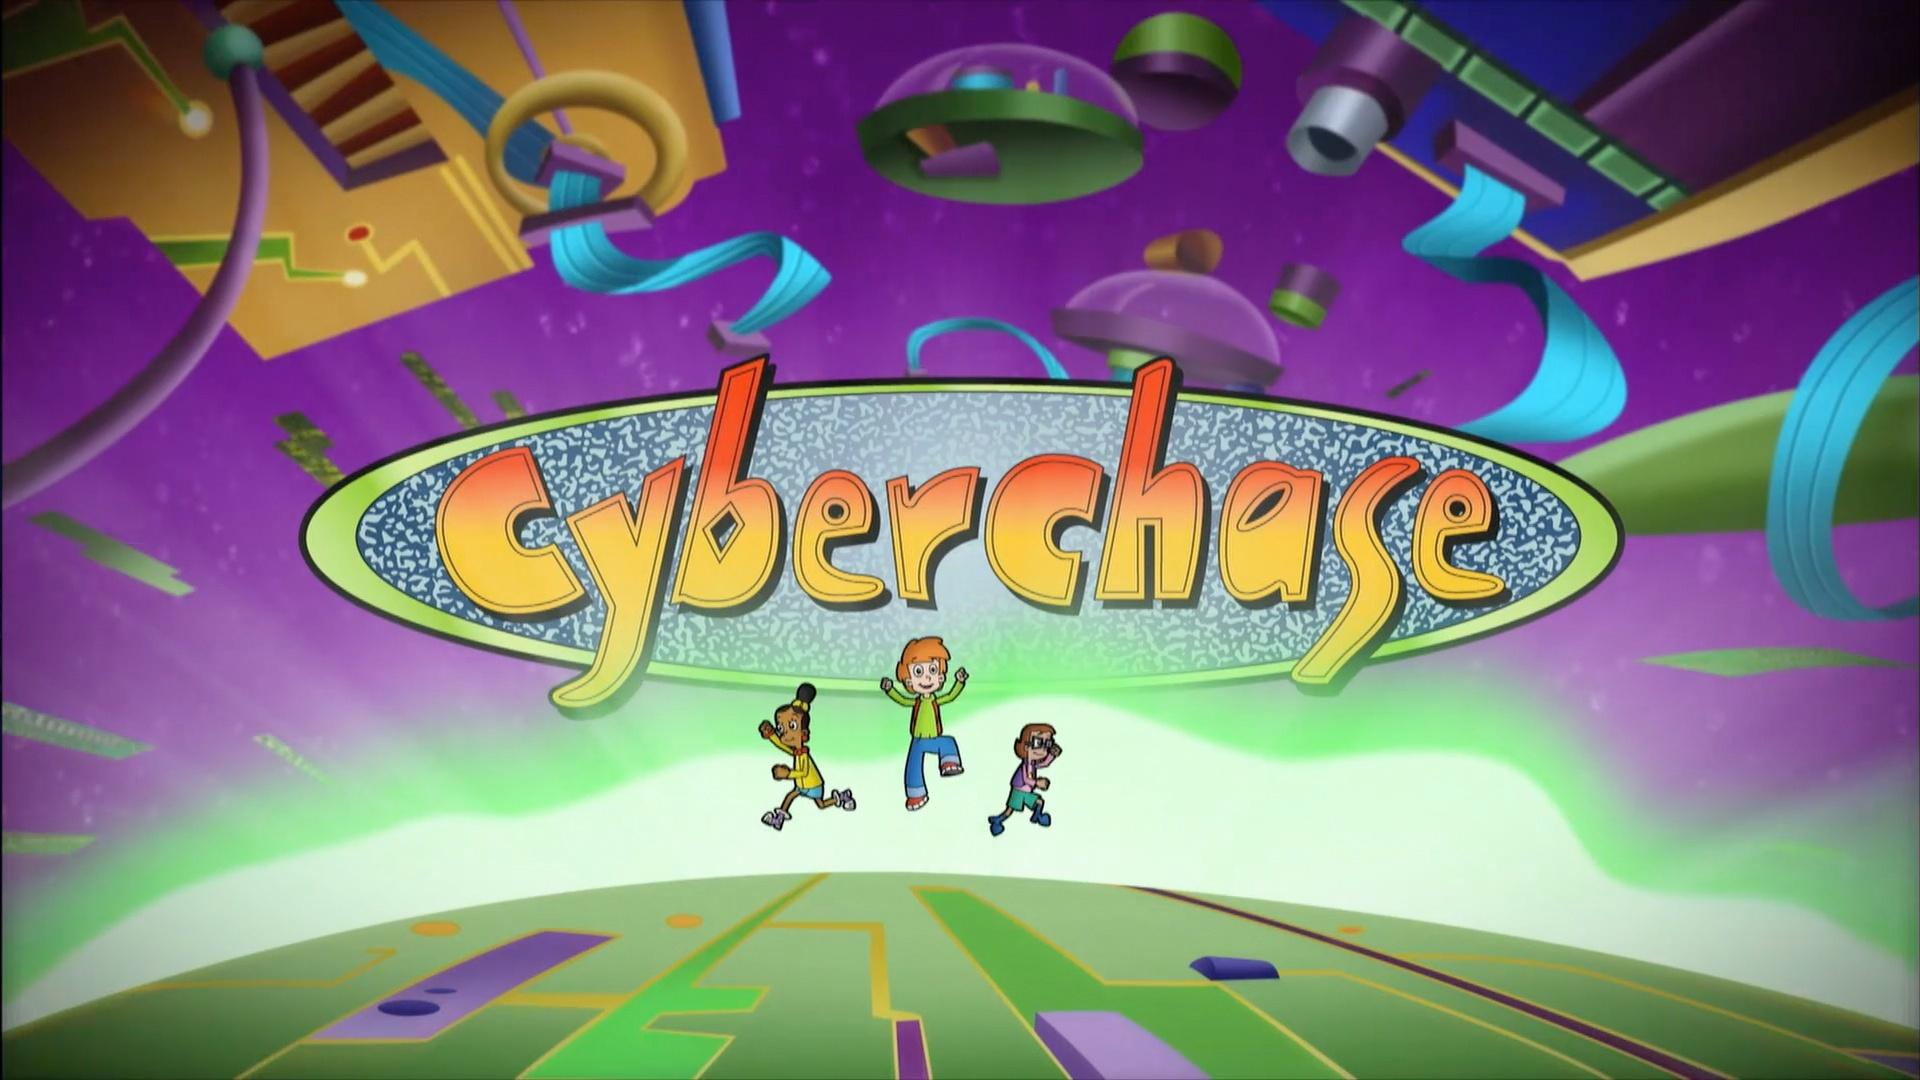 Cyberchase   PBS KIDS Shows   PBS KIDS for Parents